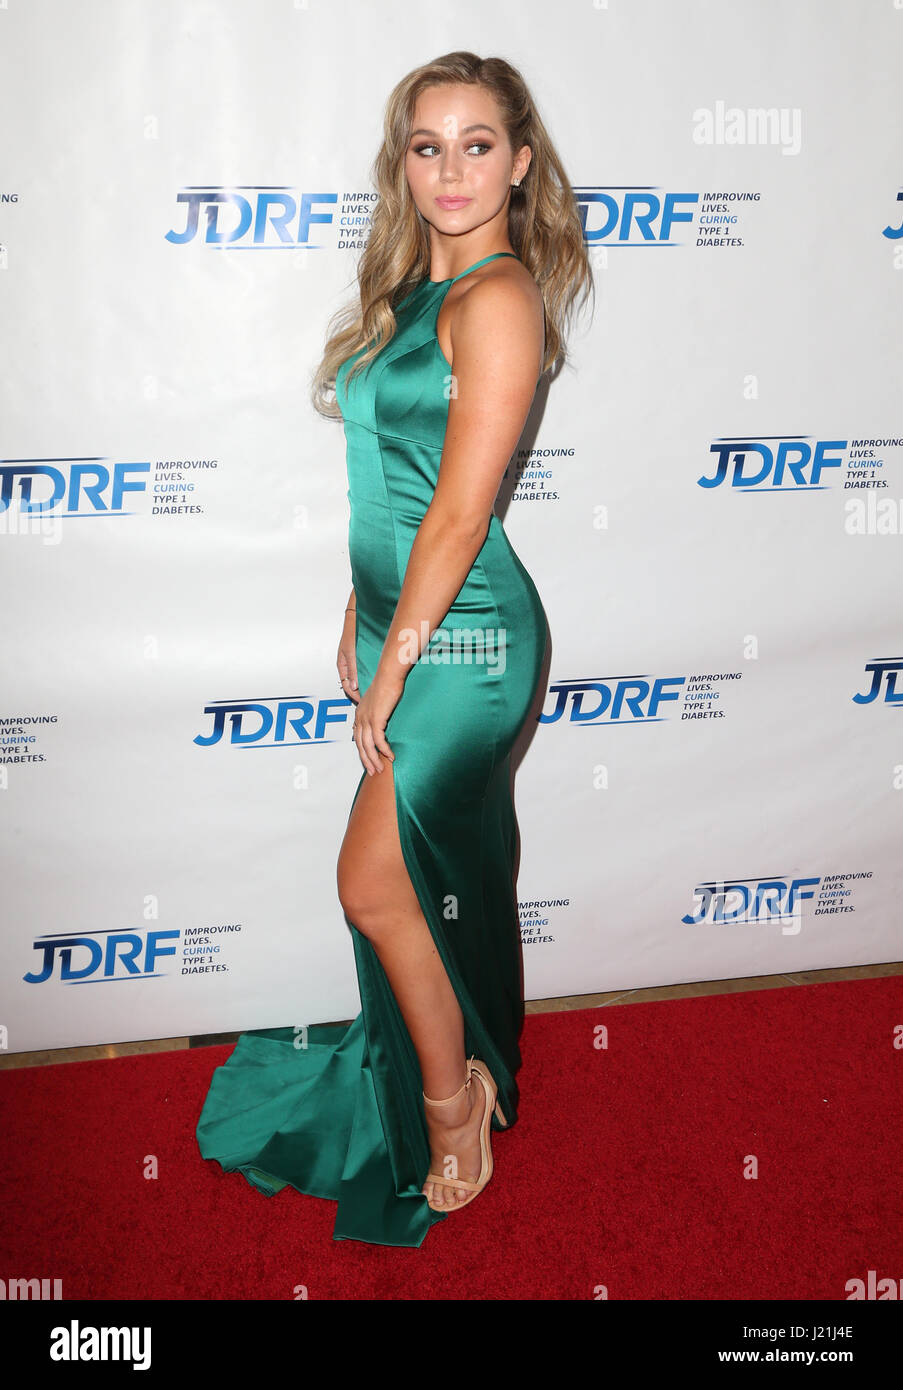 Beverly Hills, CA, USA. 17th Jan, 2017. 22 April 2017 - Beverly Hills, California - Brec Bassinger. JDRF LA Chapter's Stock Photo